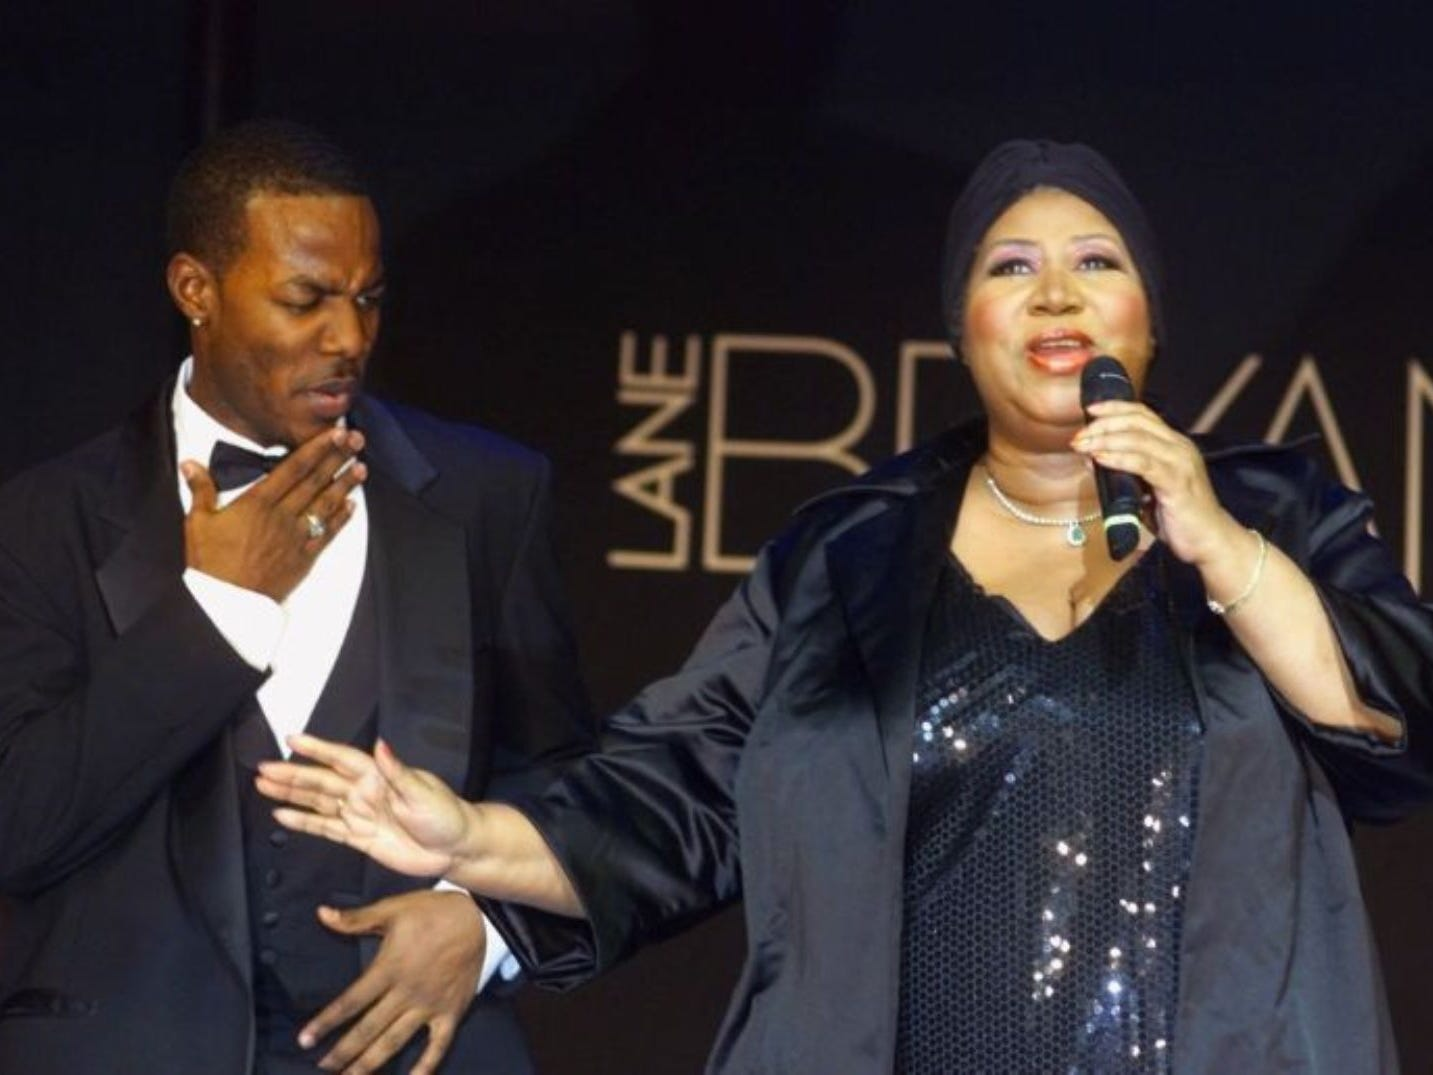 The Queen of Soul Aretha Franklin performs during the Lane Bryant Spring-Summer 2001 Lingerie Show Monday, Feb. 5, 2001, in New York.